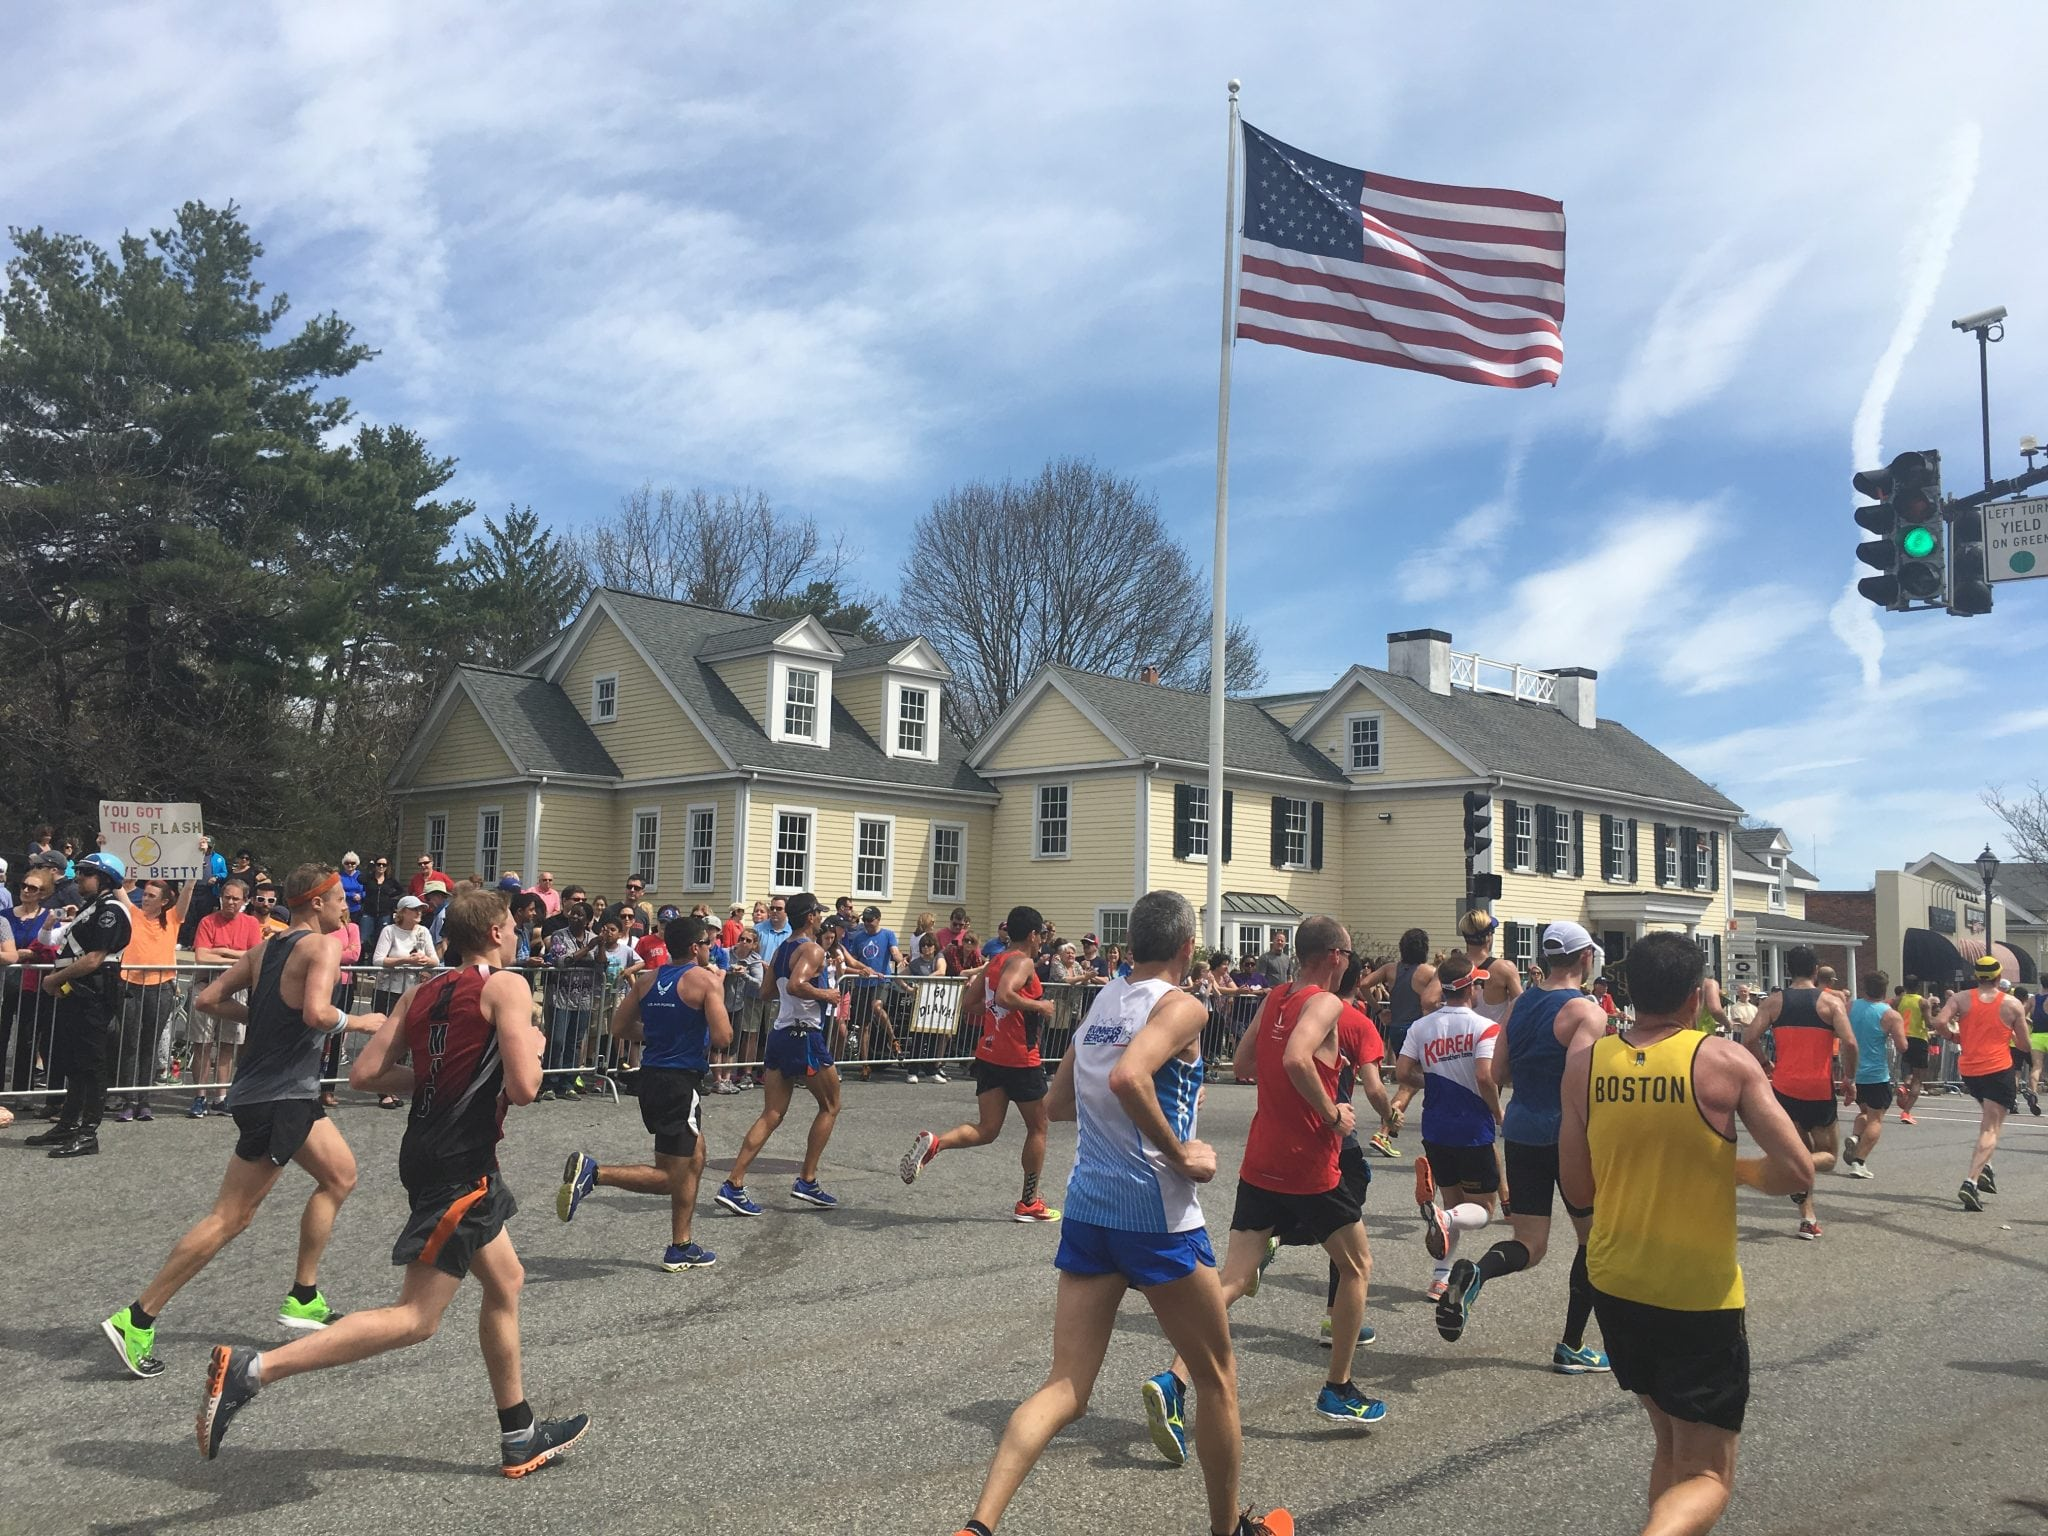 Boston Marathon, Wellesley 2017